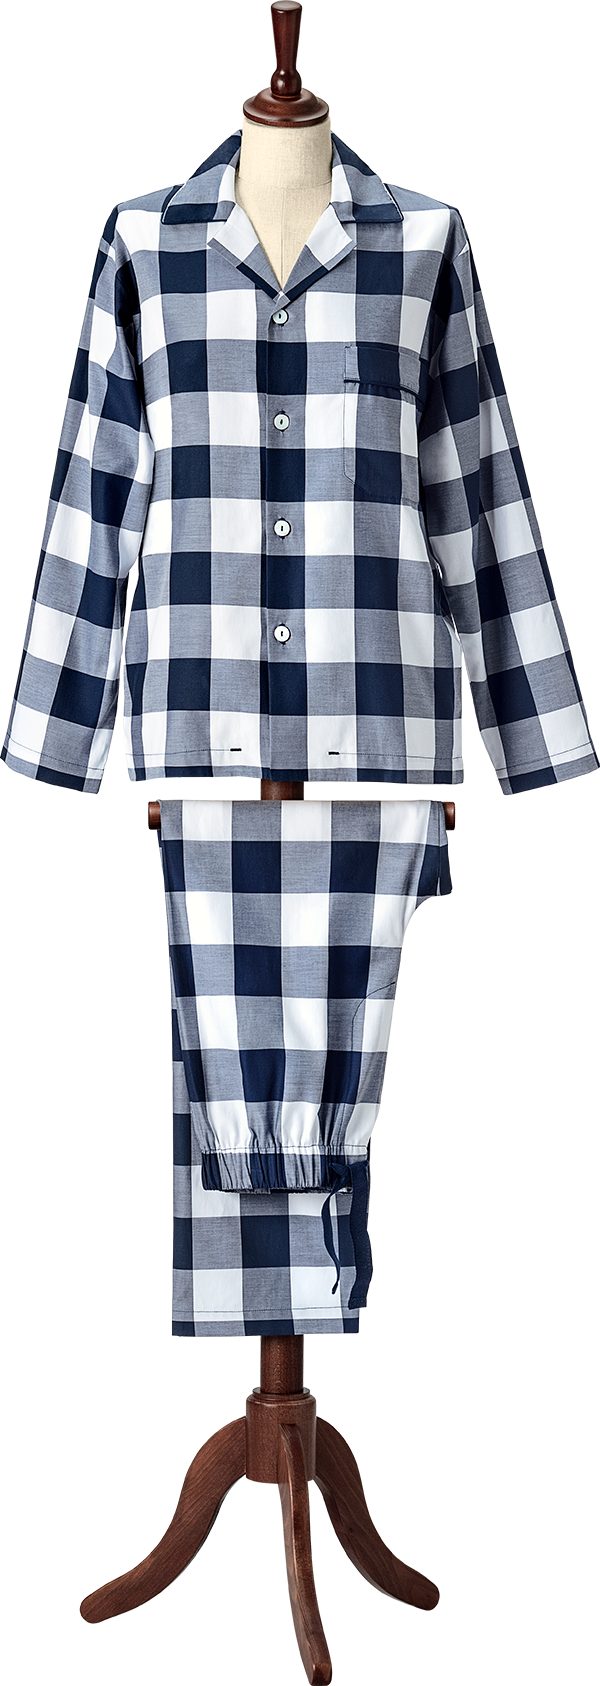 Hastens Hastens Blue Check Pajamas